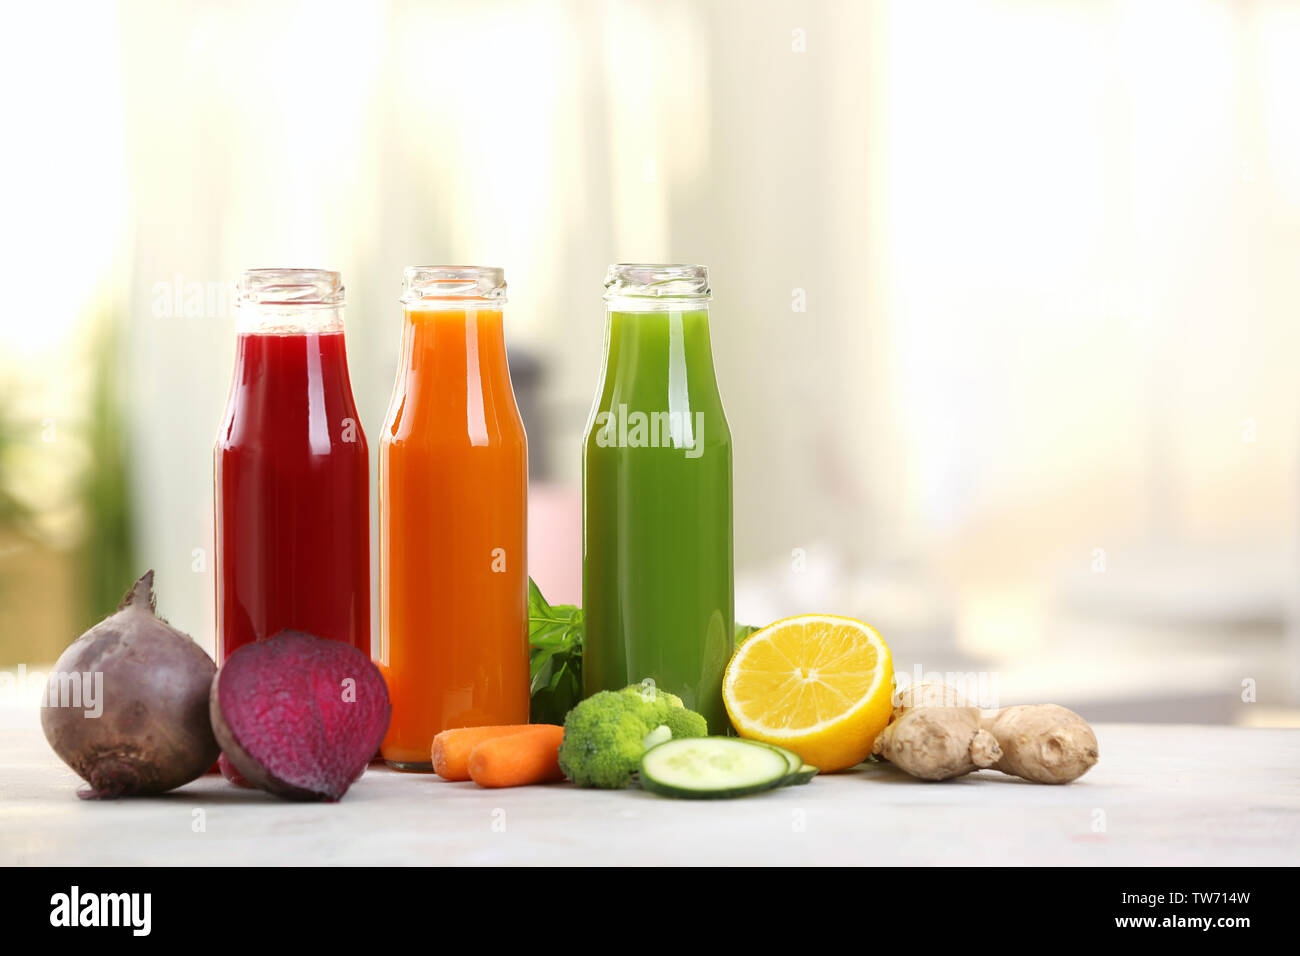 Bottles with various fresh vegetable juices on table Stock Photo